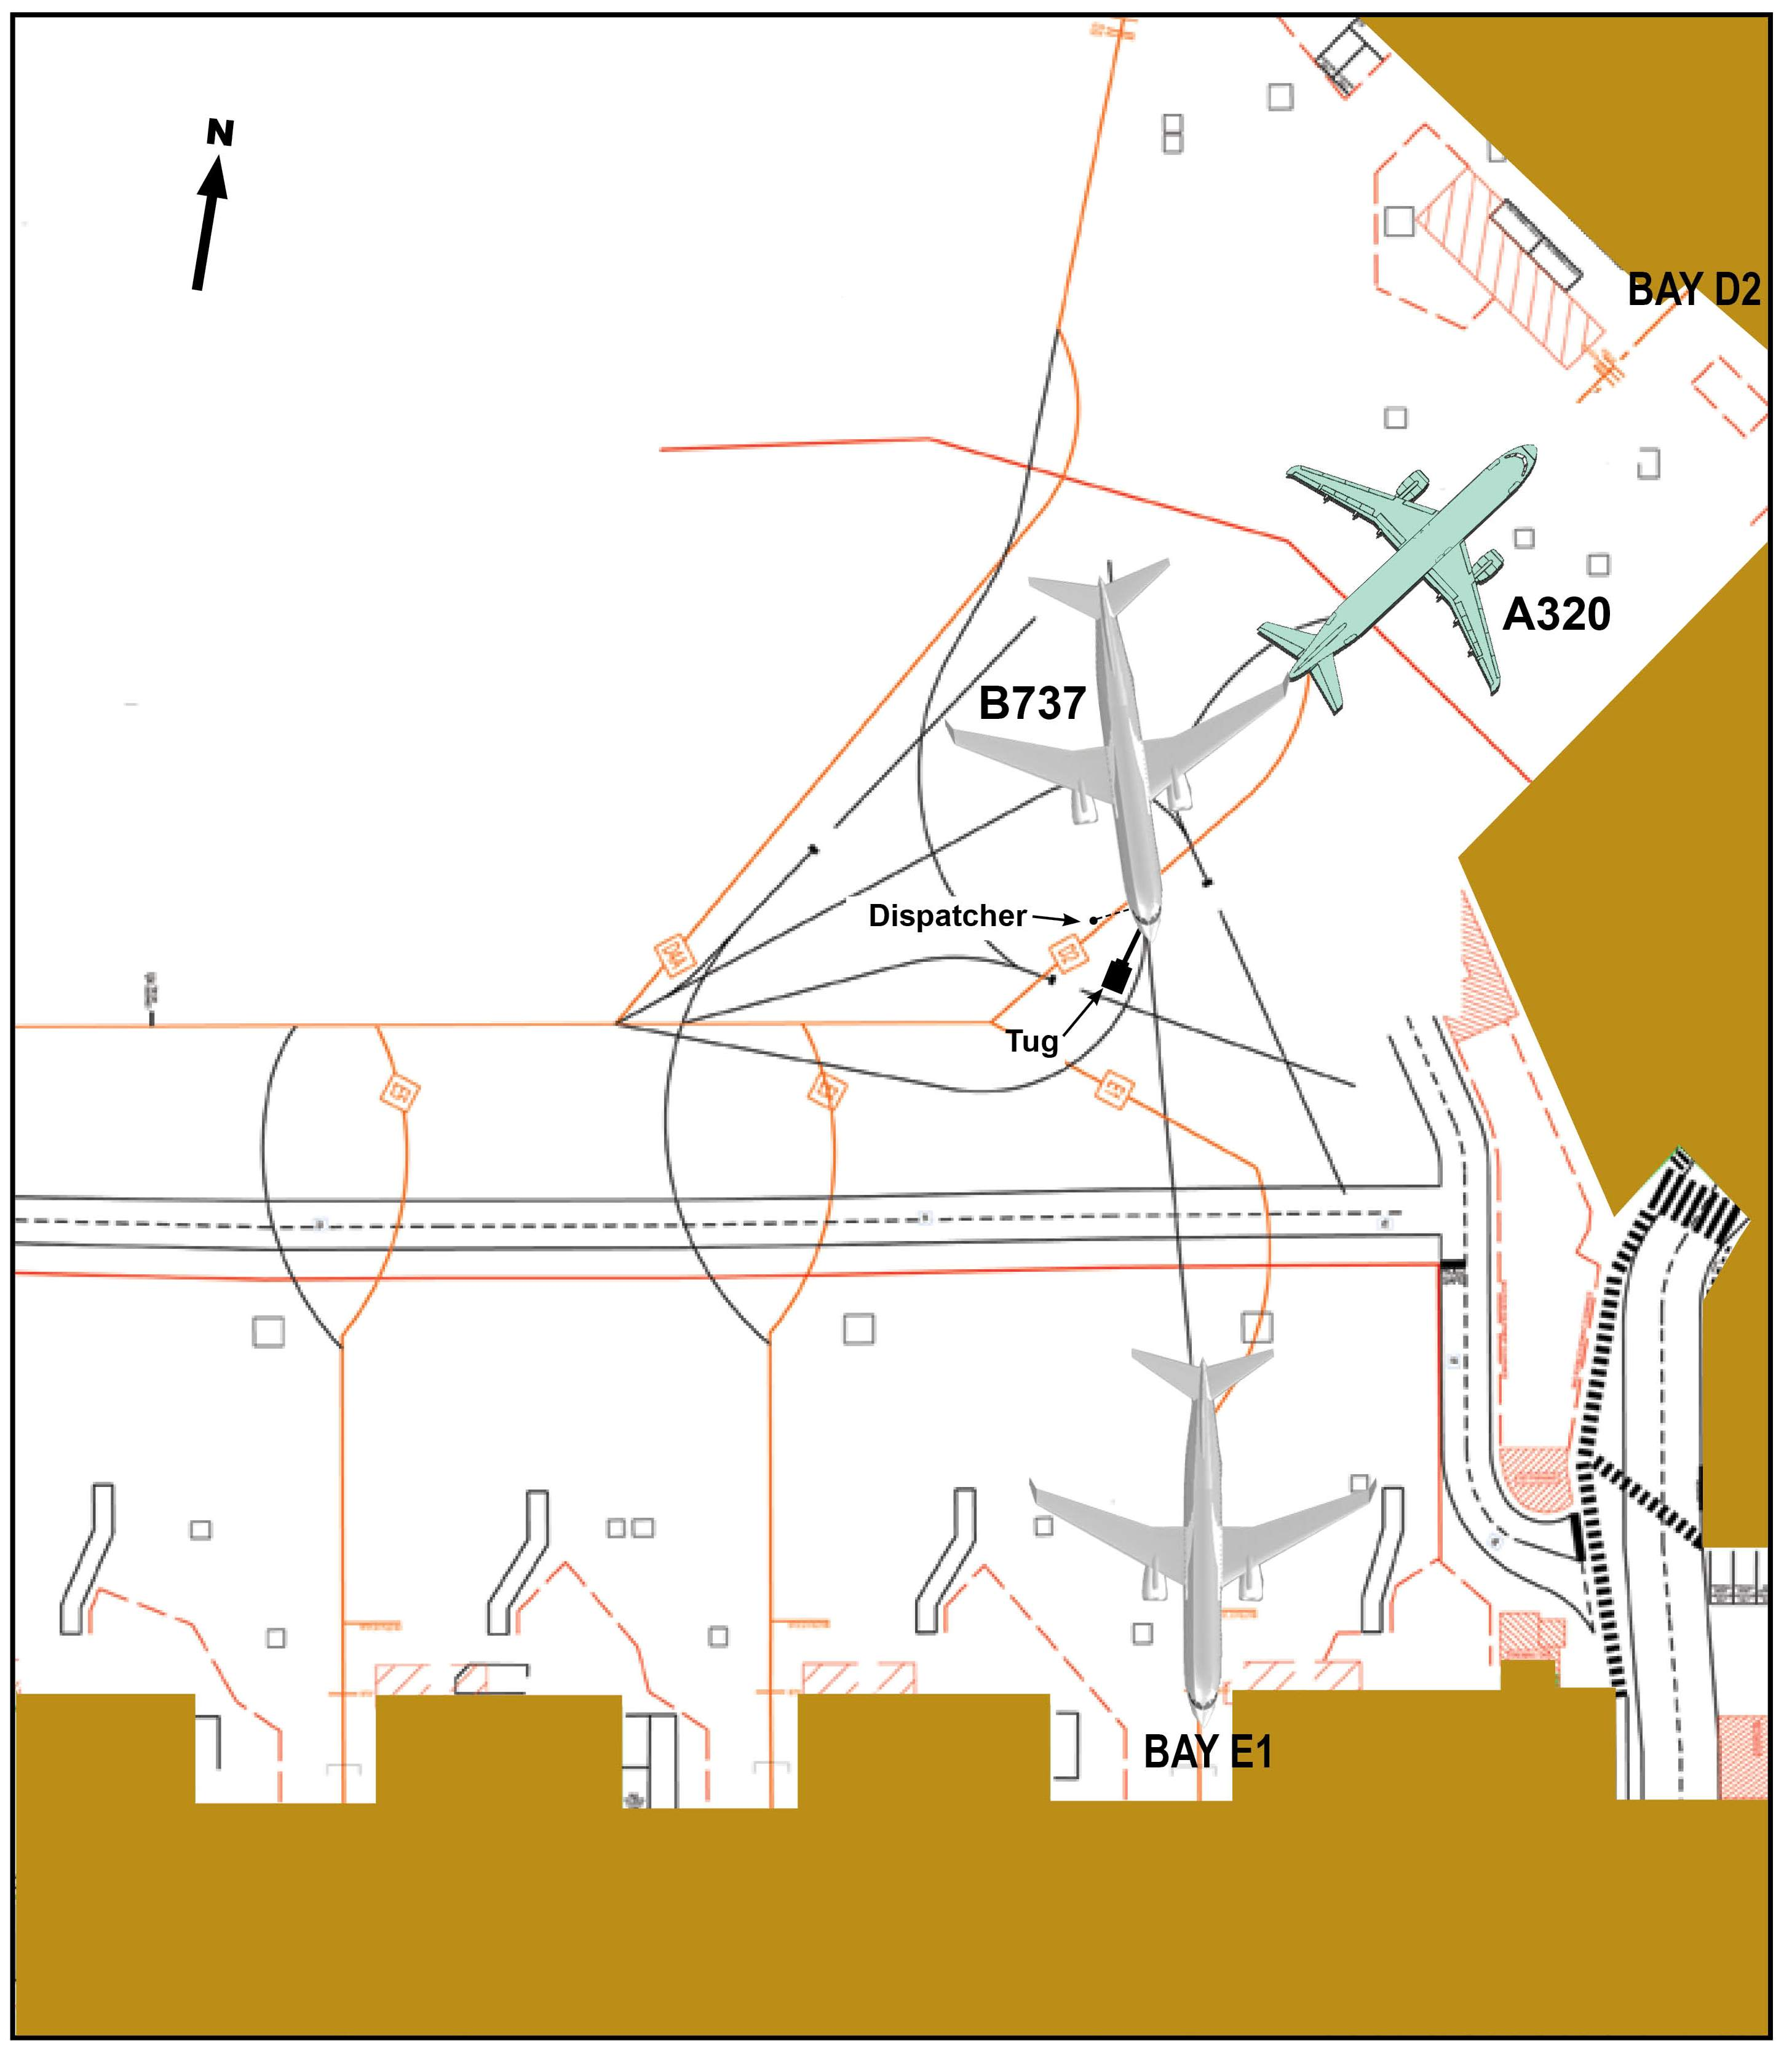 Figure 1: Position of A320 VGR (in green), holding short of gate D2, and B737 YID (in grey) during pushback from Bay E1 at the time of the collision. The position of the dispatcher and tug for YID are also shown